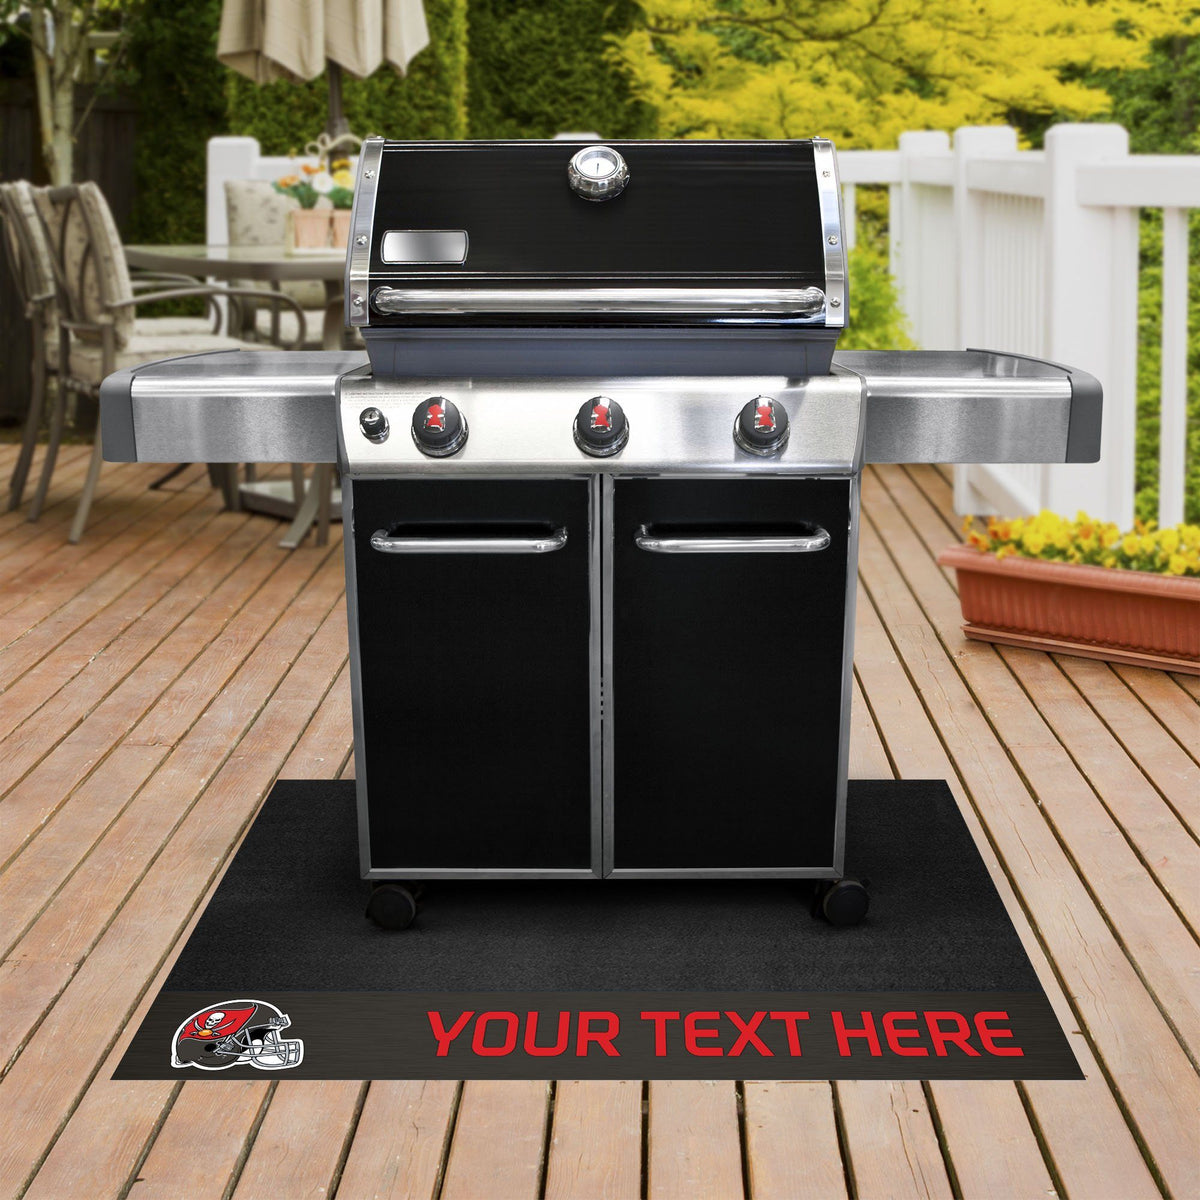 NFL Personalized Grill Mat Personalized Grill Mat Fan Mats Tampa Bay Buccaneers